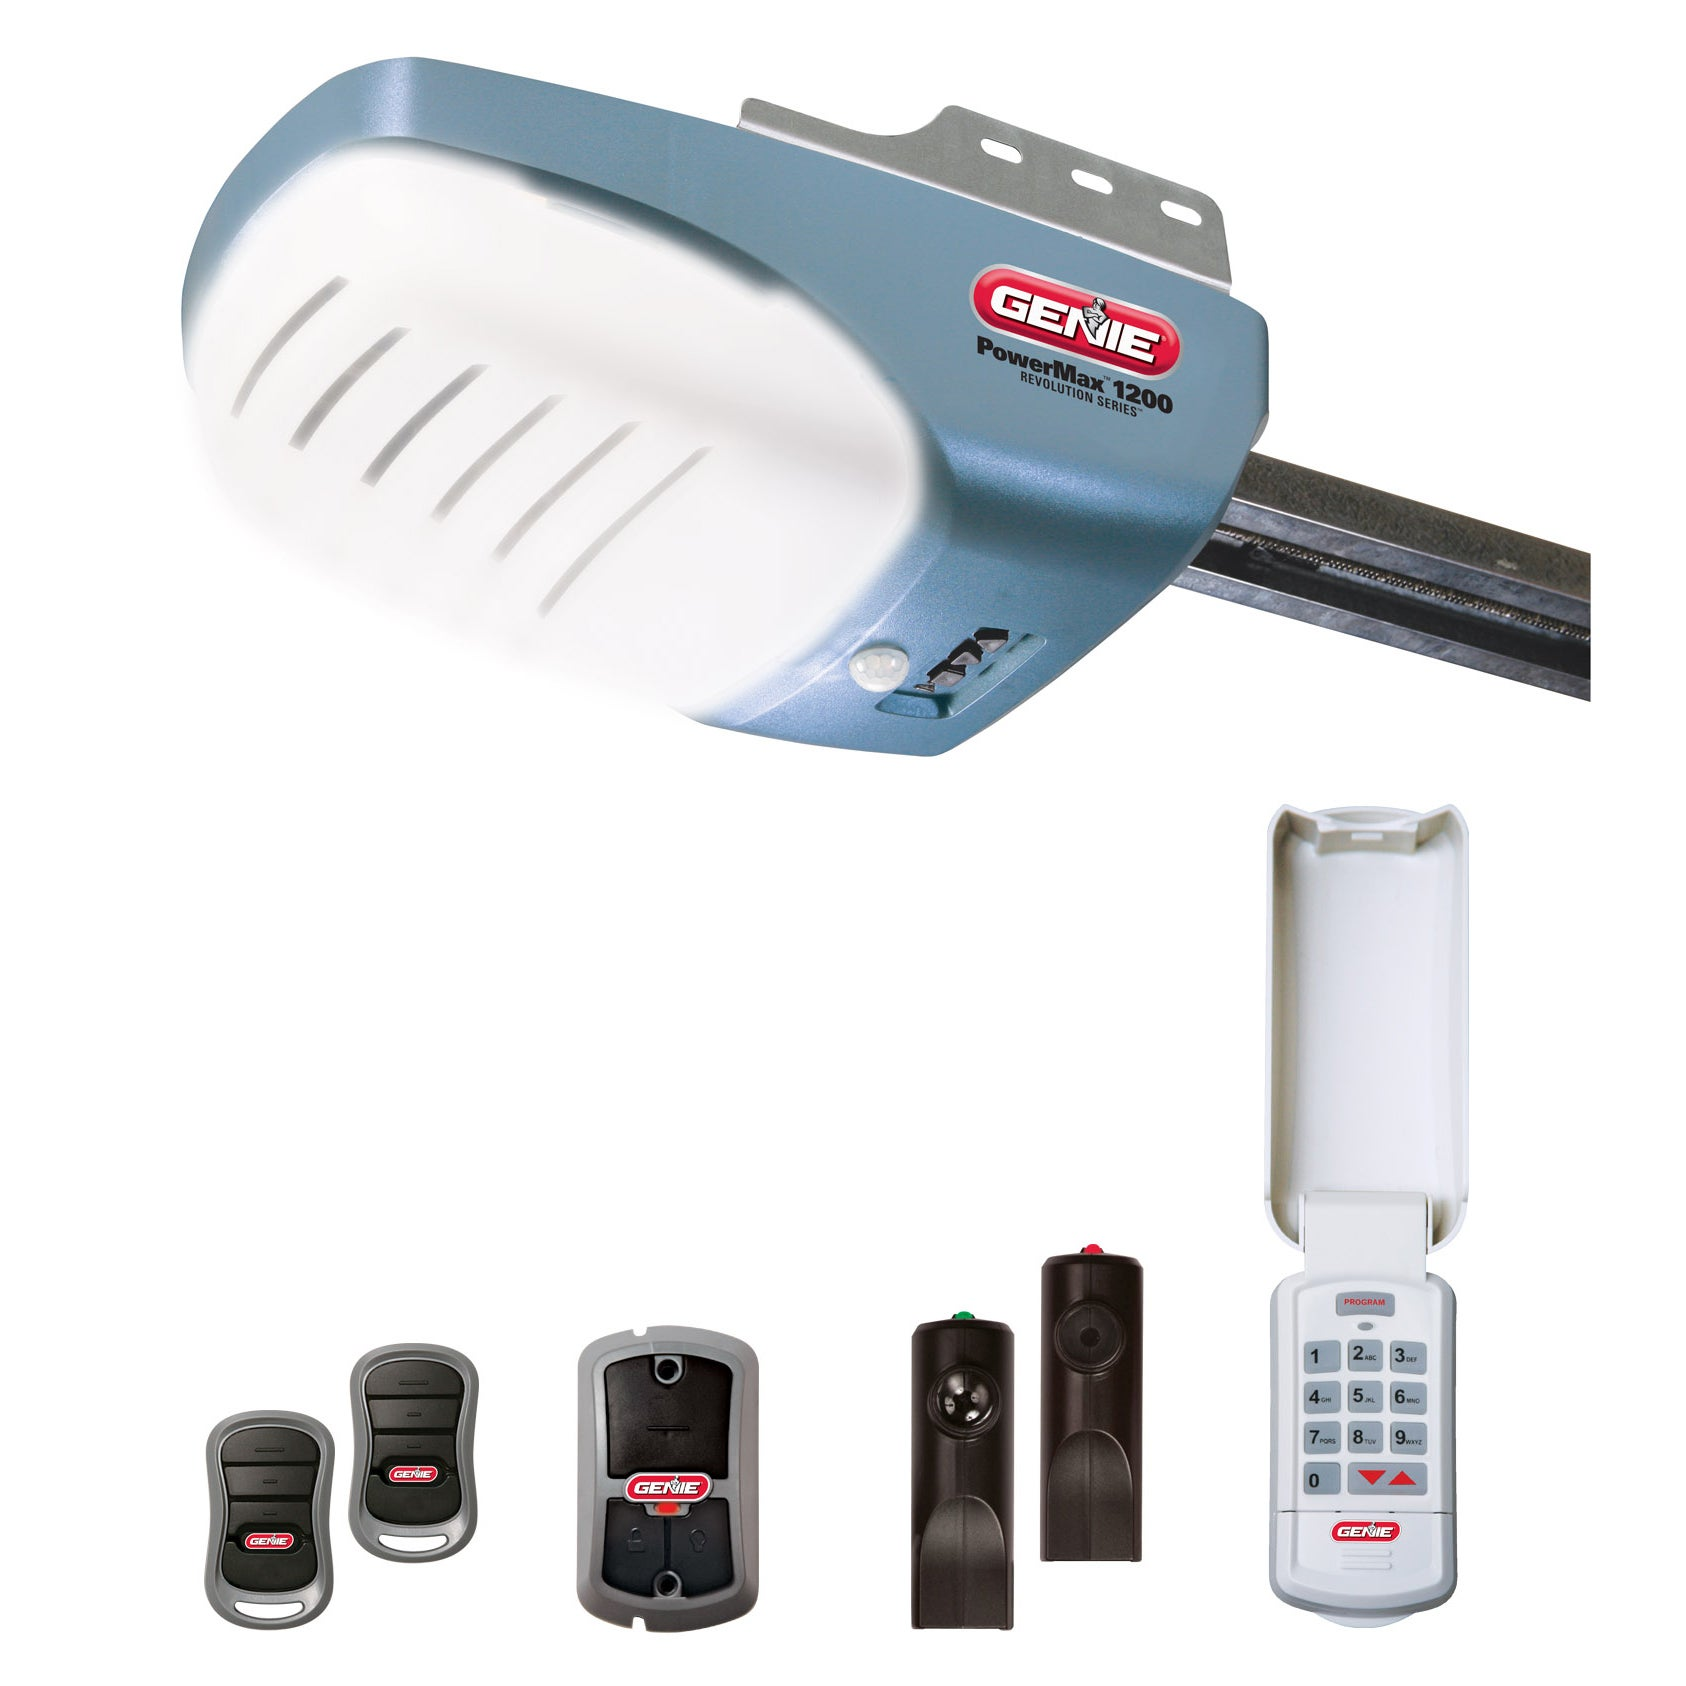 Genie Garage Door Opener w/ 2 Remotes, Wall Console, and ...